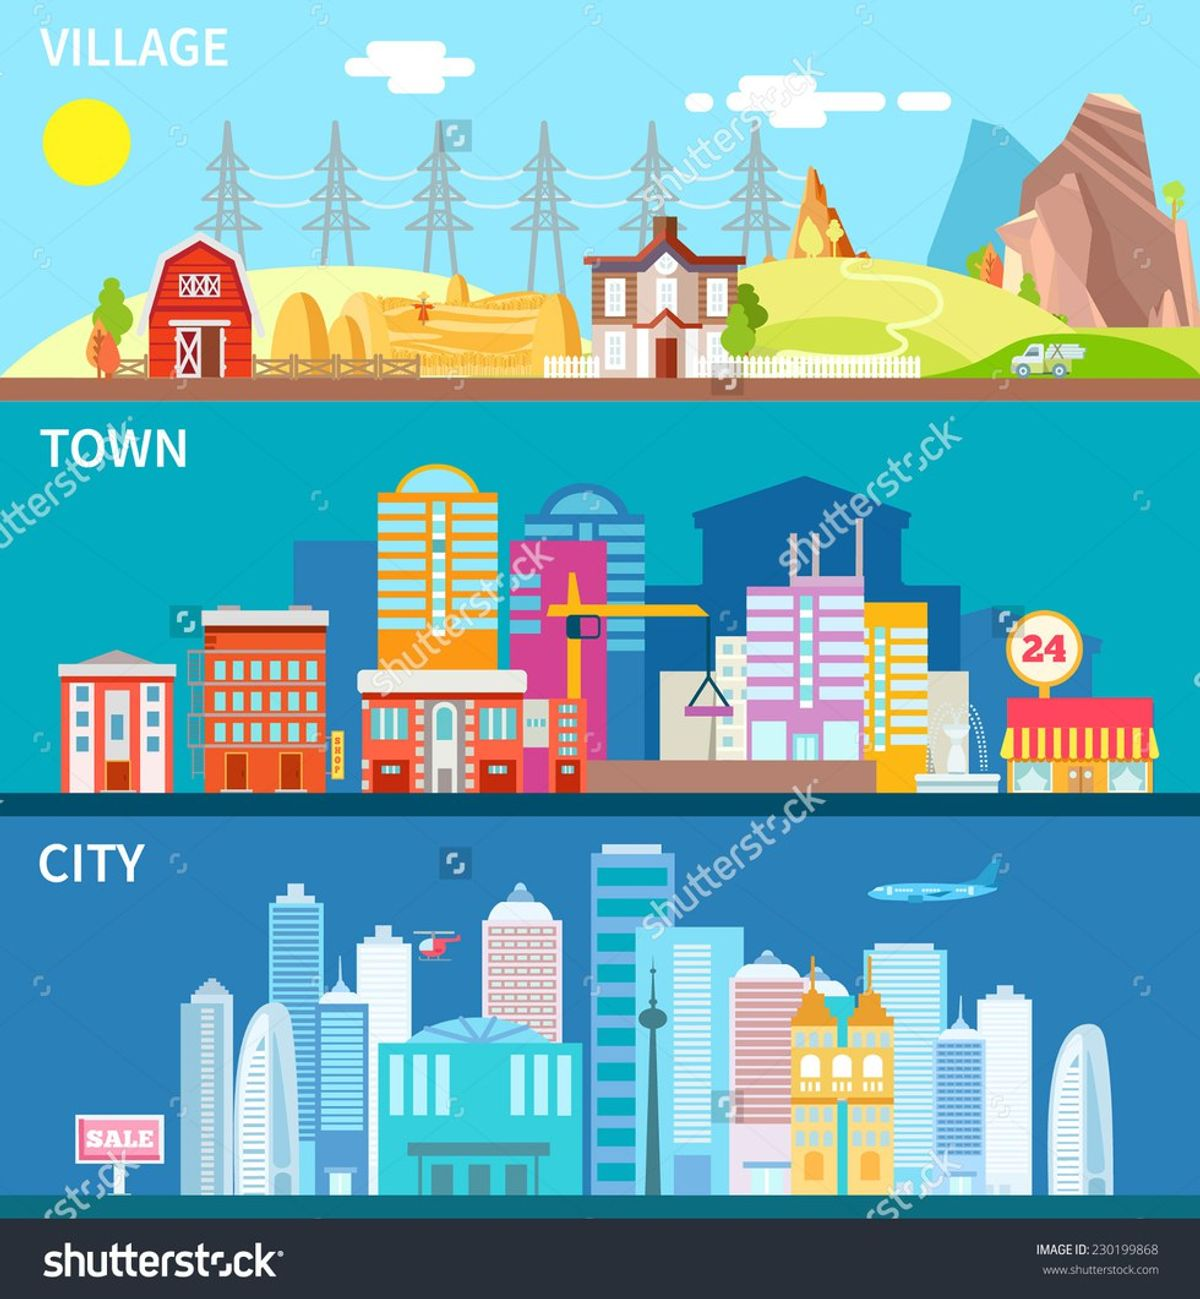 8 Differences Between City and Rural Life